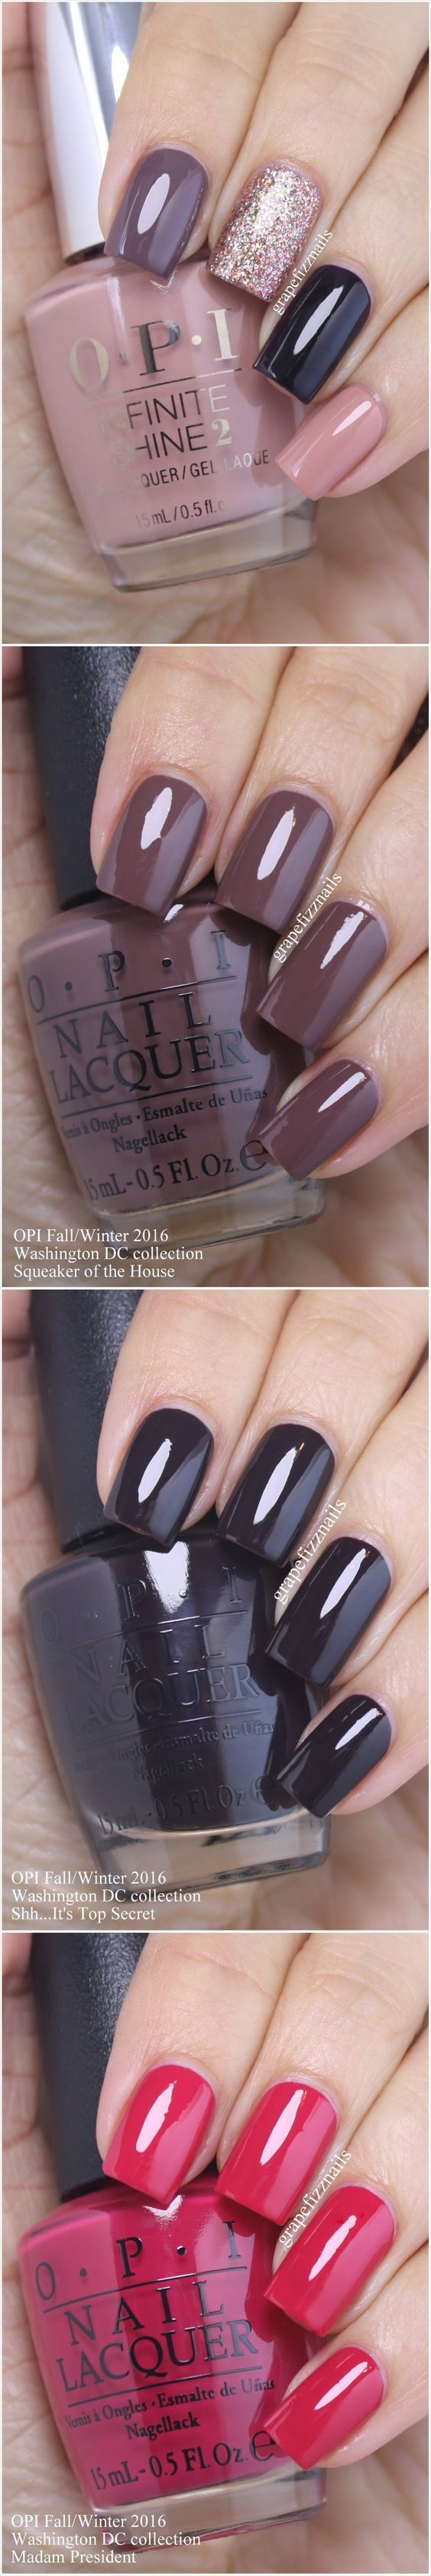 21+ 10 Easy Nail Designs You Can Do At Home   Her Style Code